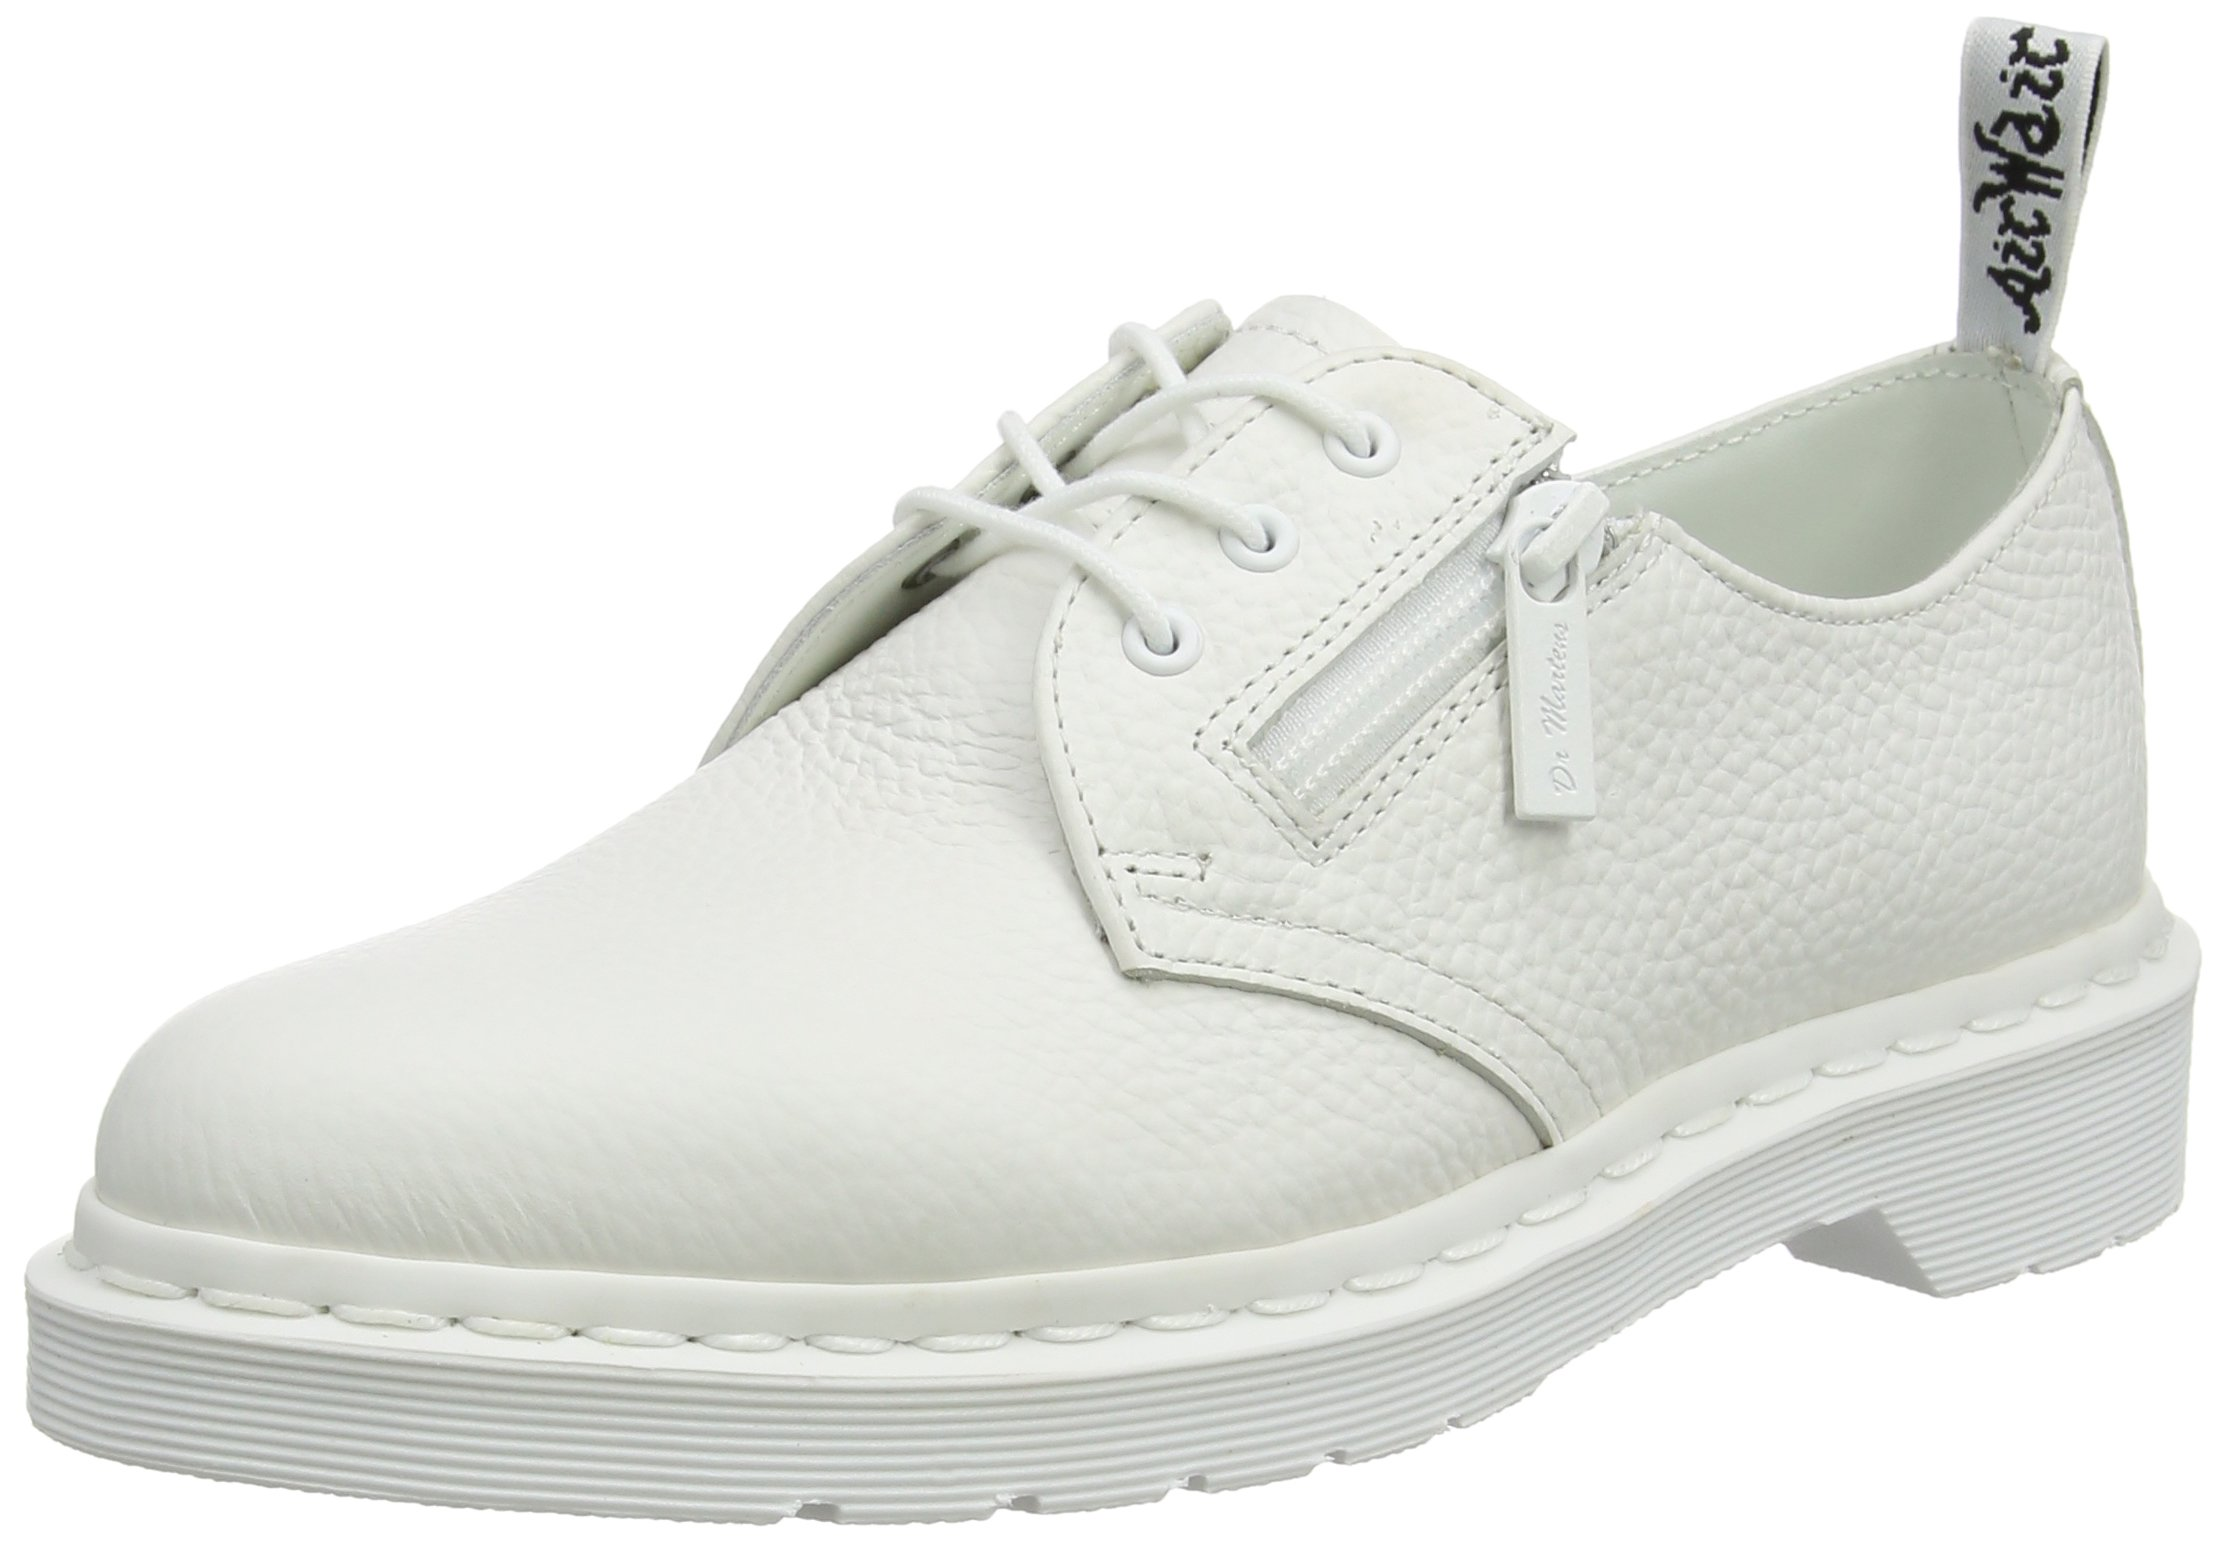 Dr. Martens Women's 1461 W/Zip Oxford, White, 8 UK/10 B US by Dr. Martens